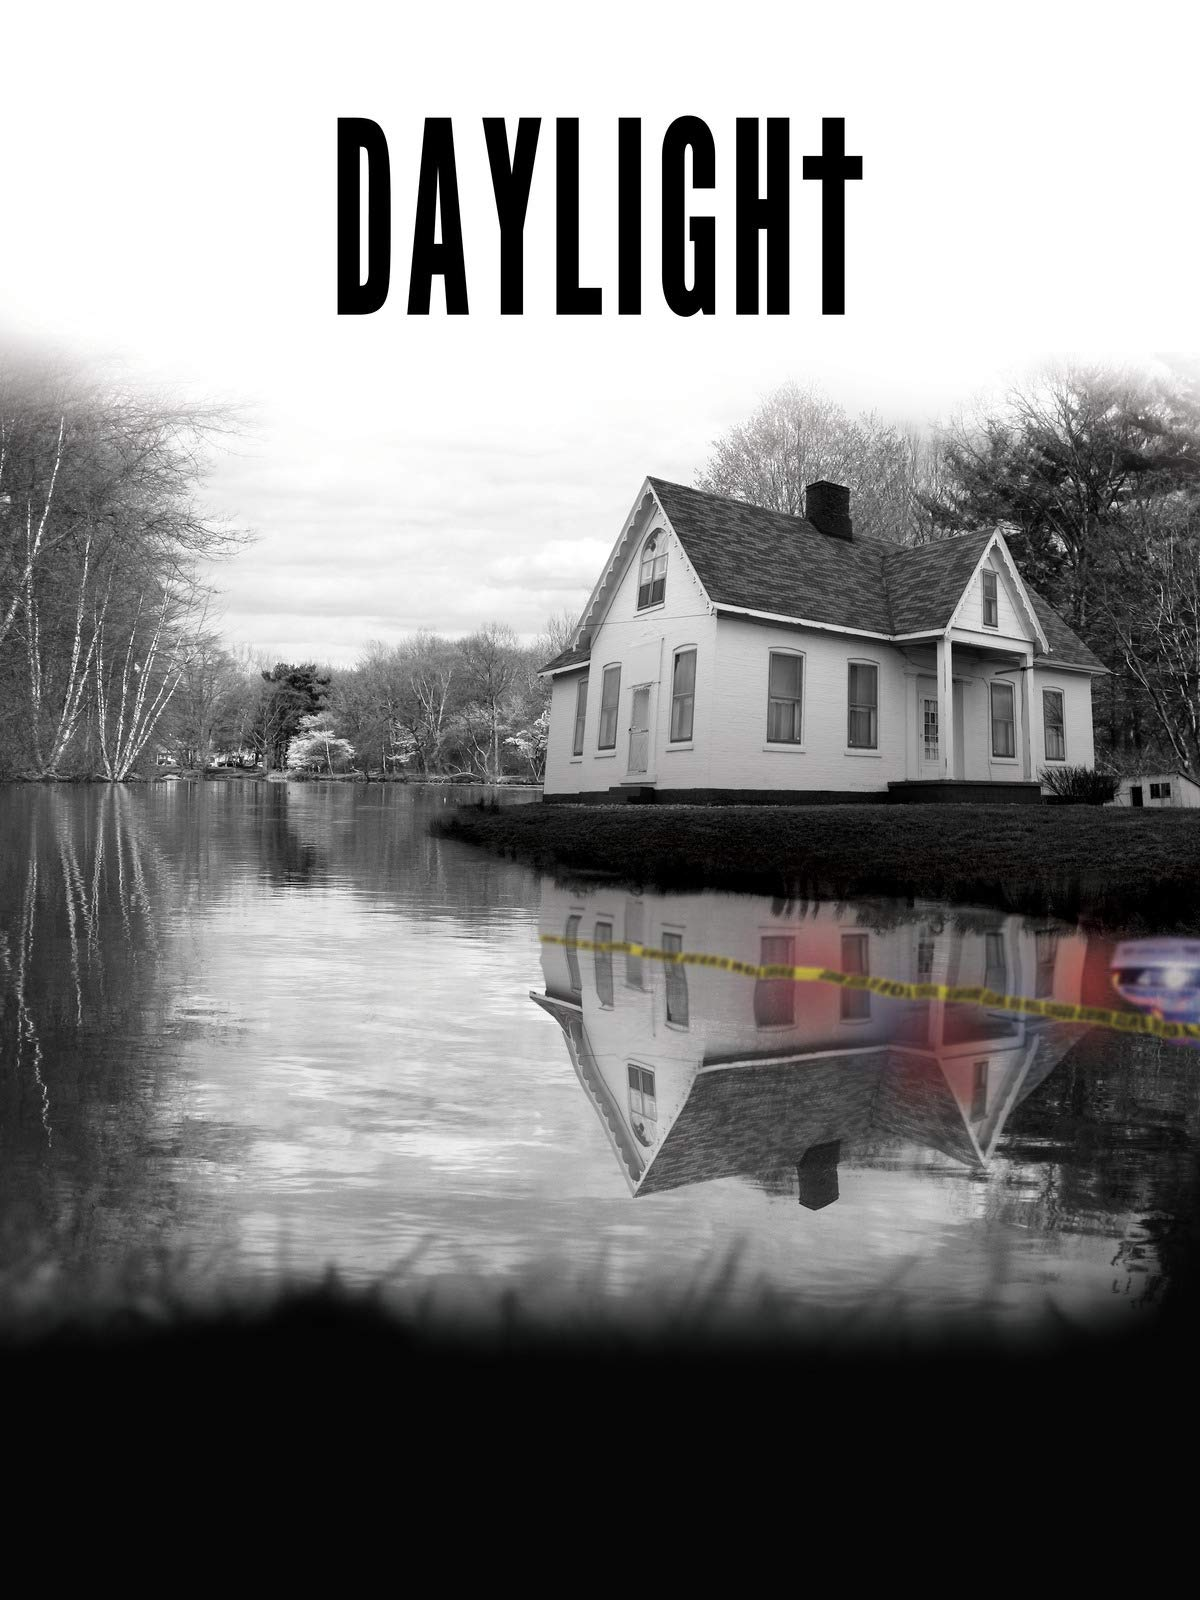 Daylight on Amazon Prime Video UK